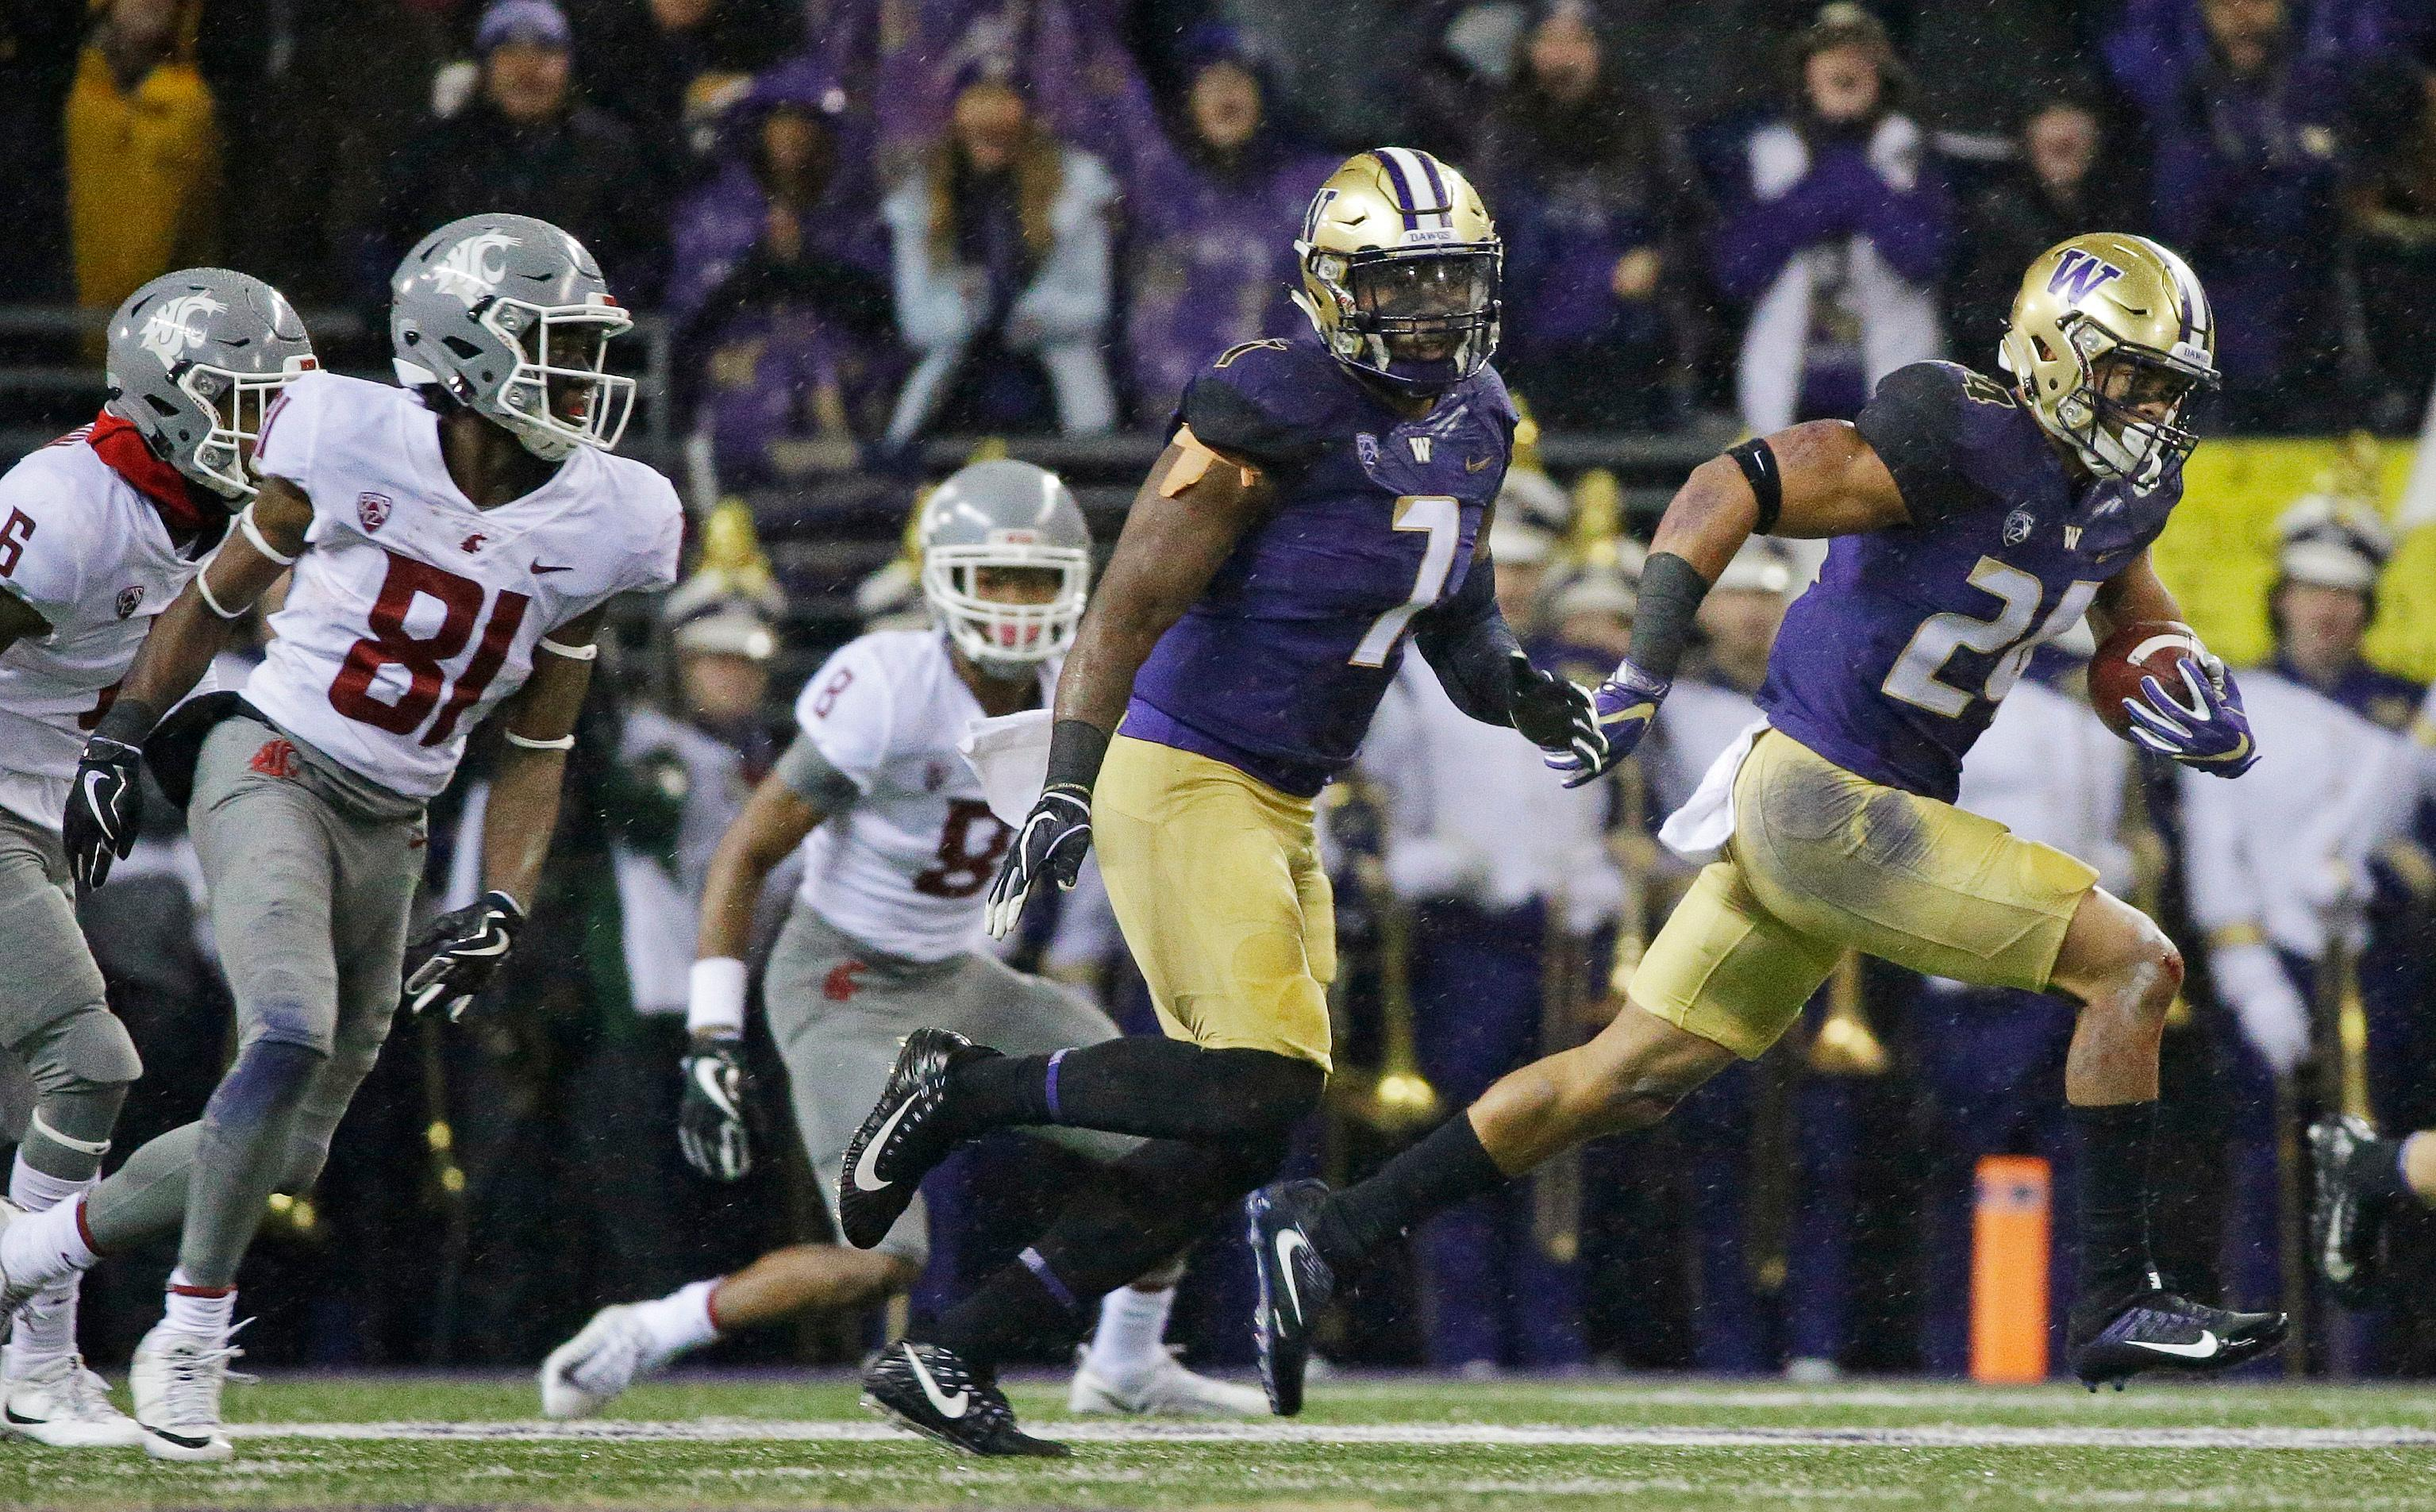 Washington defensive back Ezekiel Turner, right, runs with the ball after he intercepted a Washington State pass during the first half of an NCAA college football game, Saturday, Nov. 25, 2017, in Seattle. (AP Photo/Ted S. Warren)<p></p>